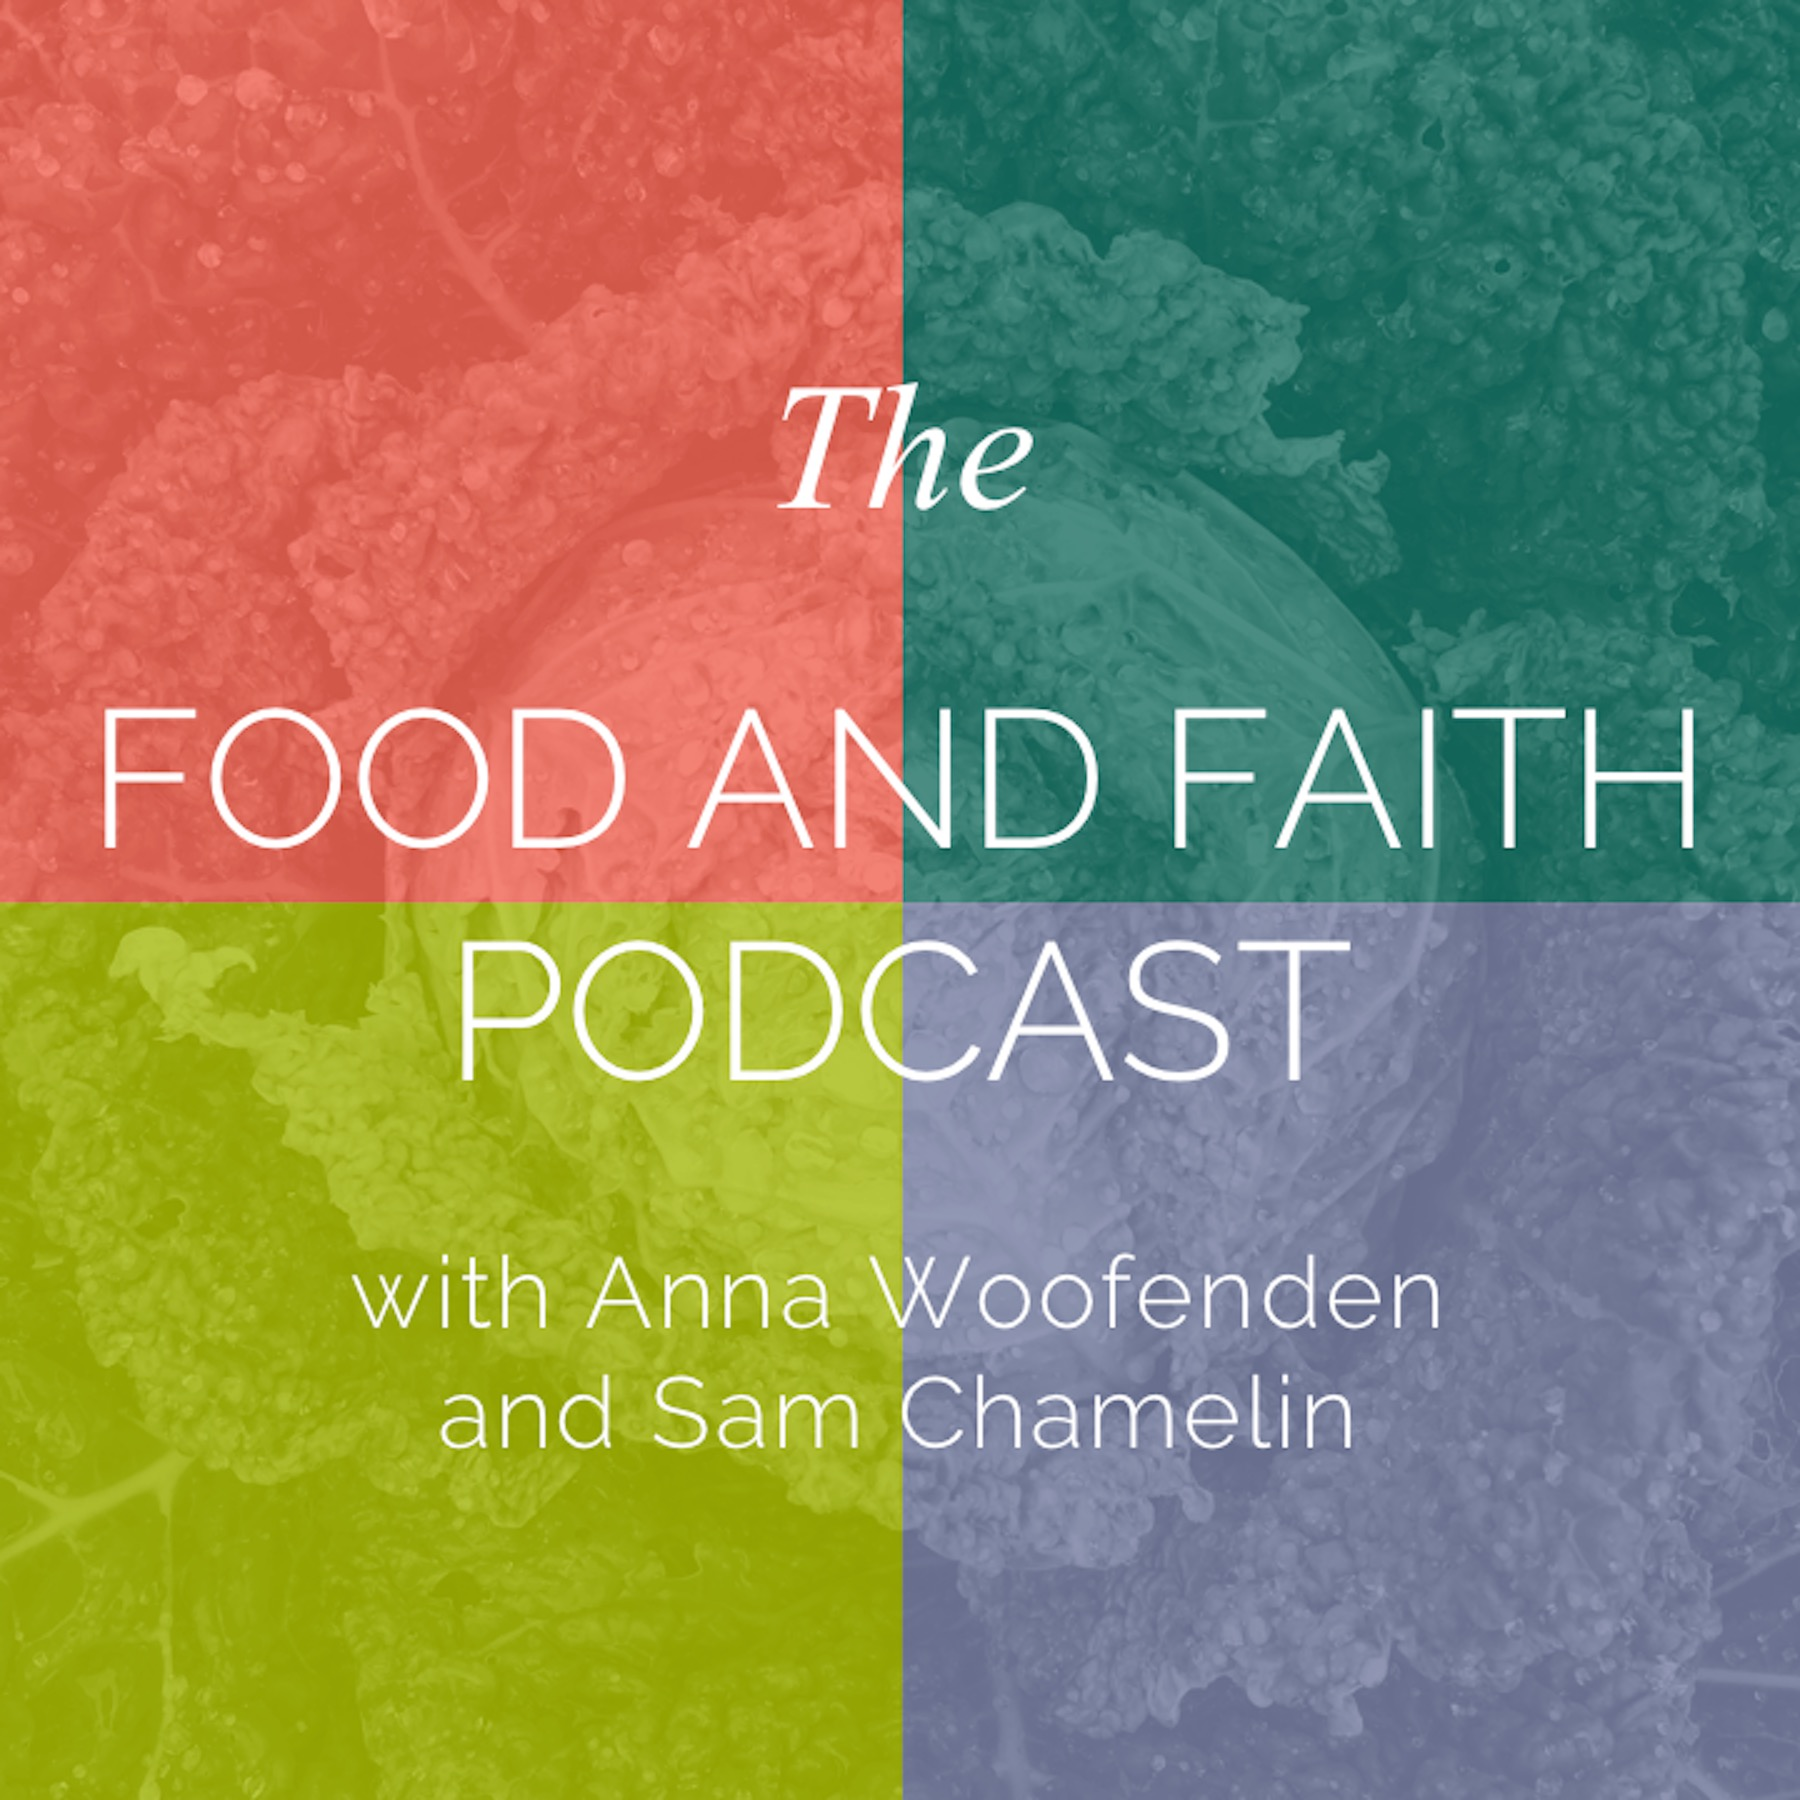 Food and Faith Podcast